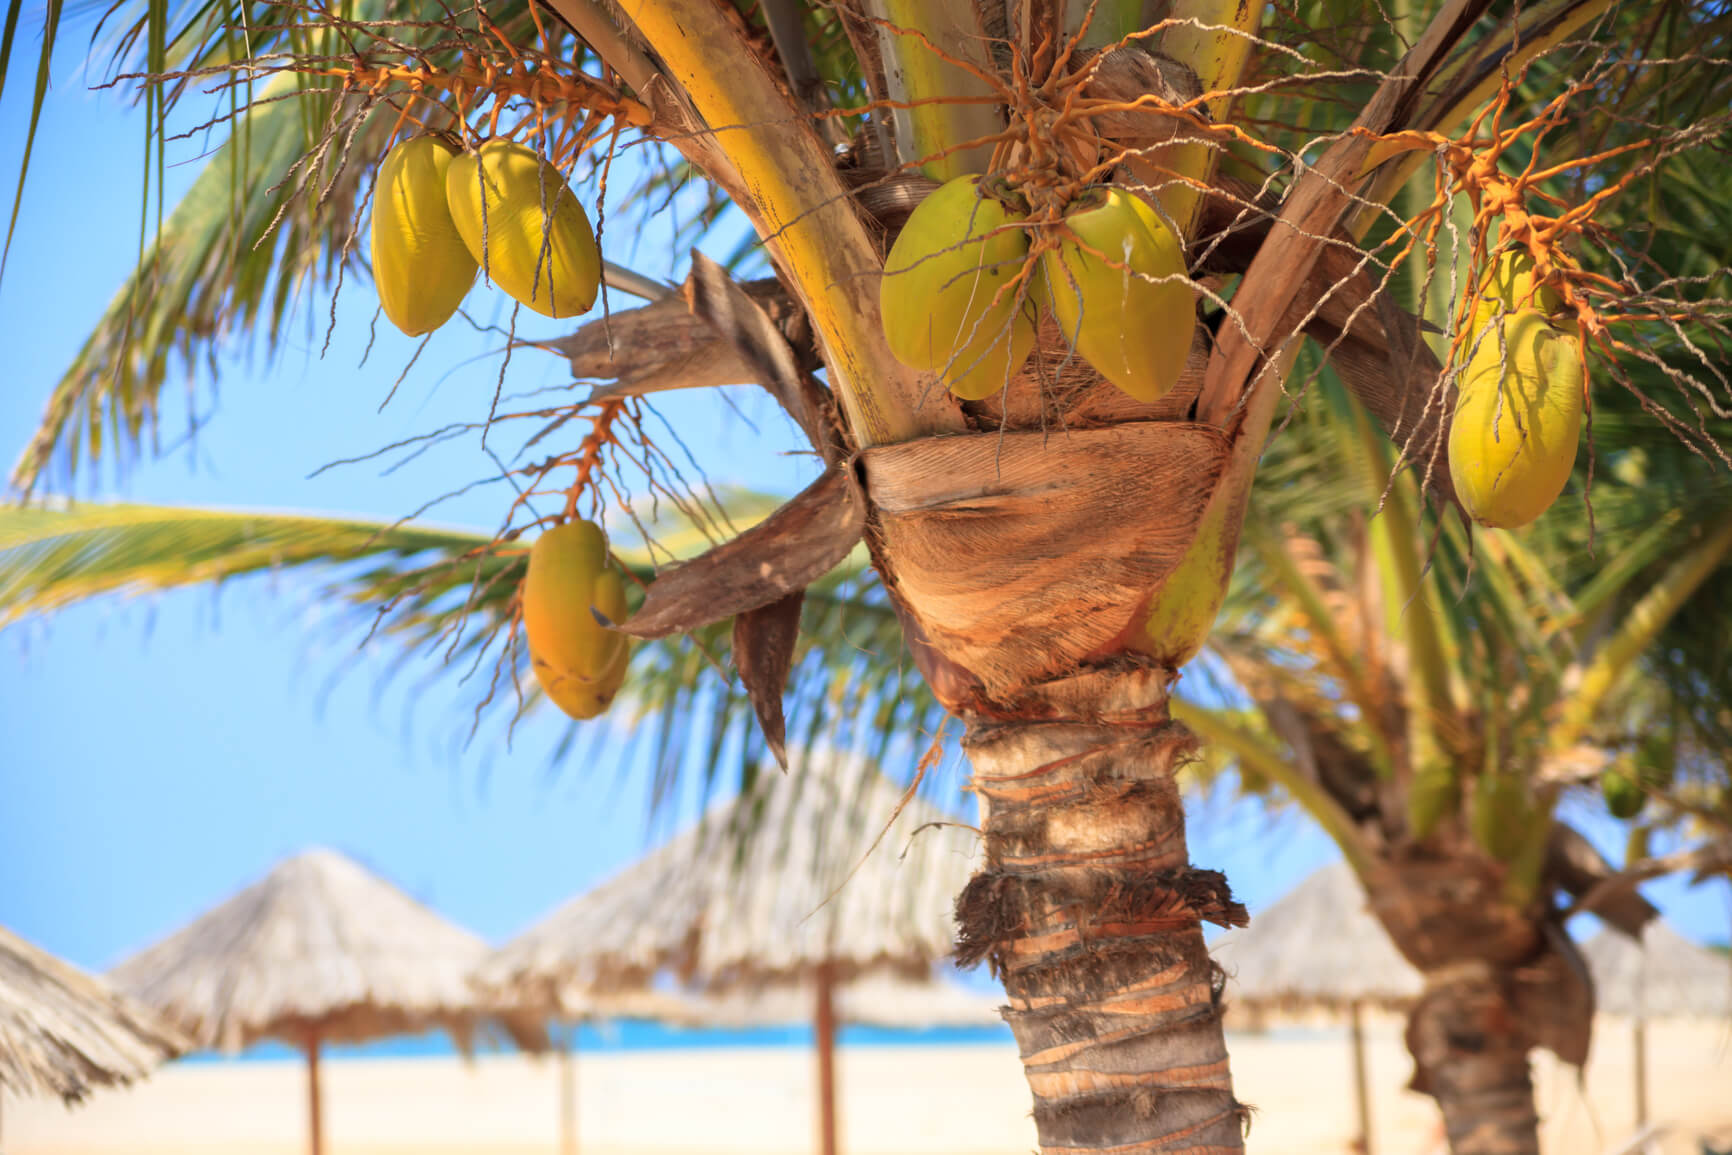 Non-stop from Birmingham or Manchester, UK to Cape Verde for only £171 roundtrip